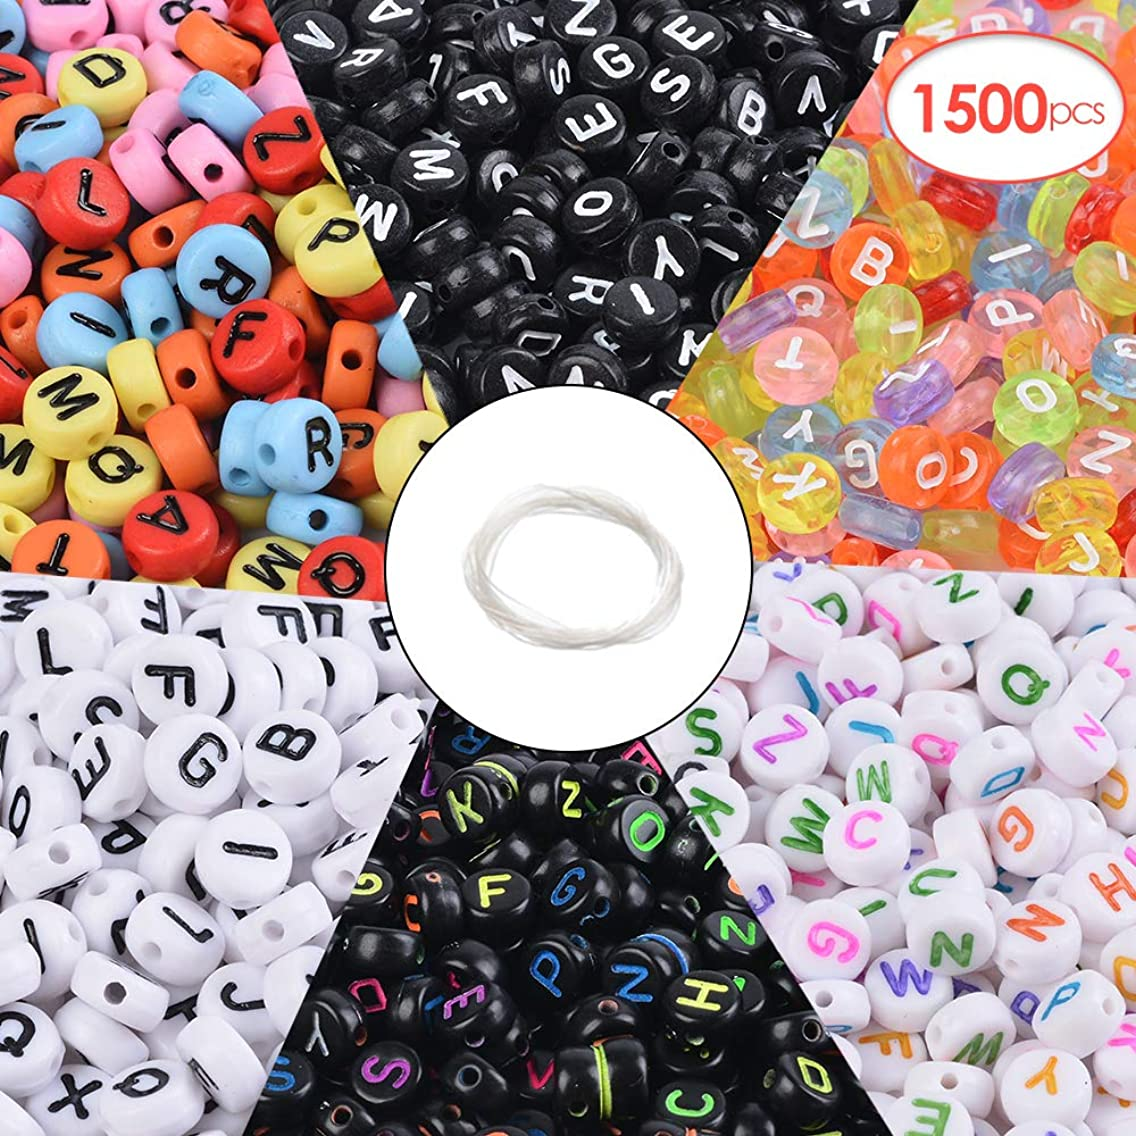 Souarts 1500pcs Letter Beads 6 Styles Acrylic Letter Beads Round Alphabet Letter Beads for Bracelet Bracelets Jewelry Making Key Chains and Kids Jewelry 4x7mm